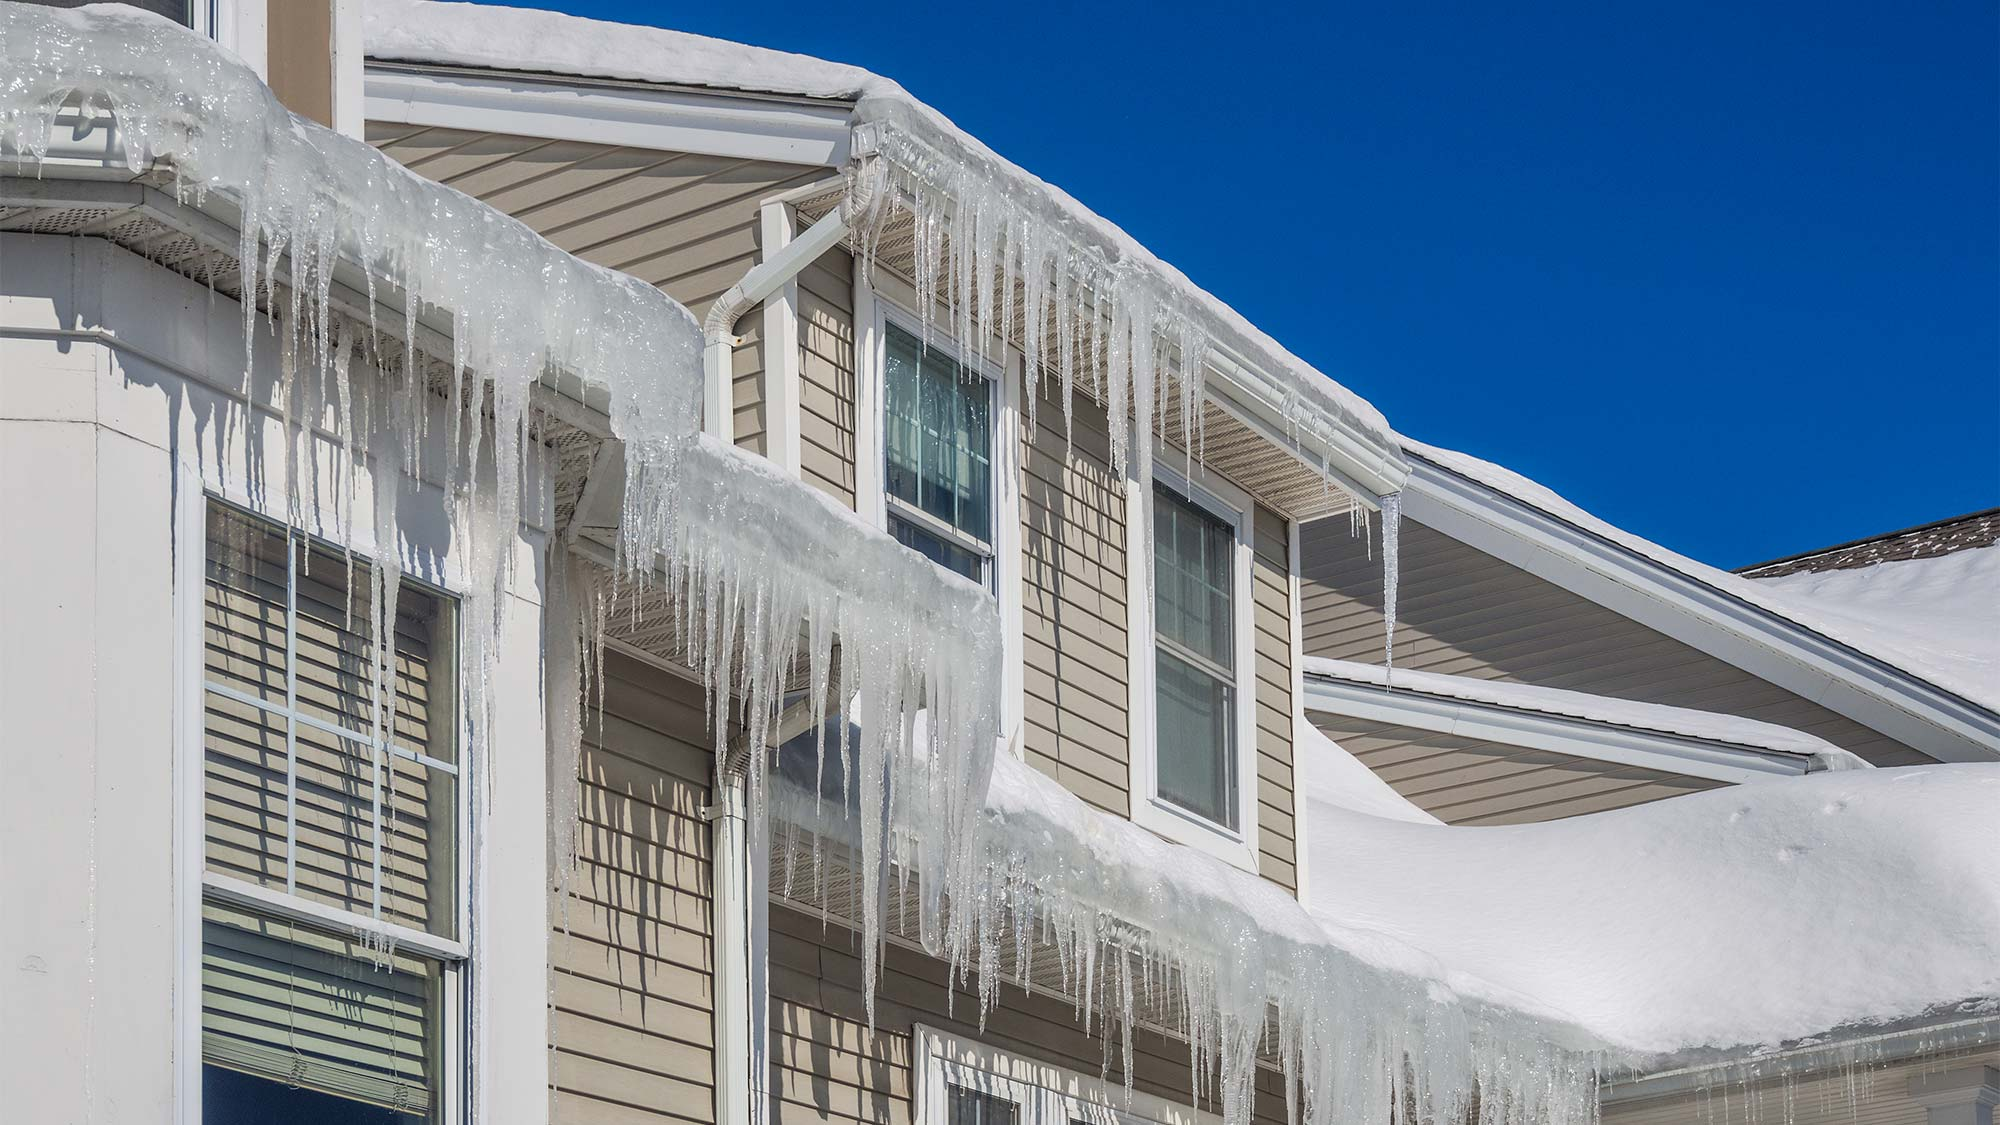 Those darn ice dams.